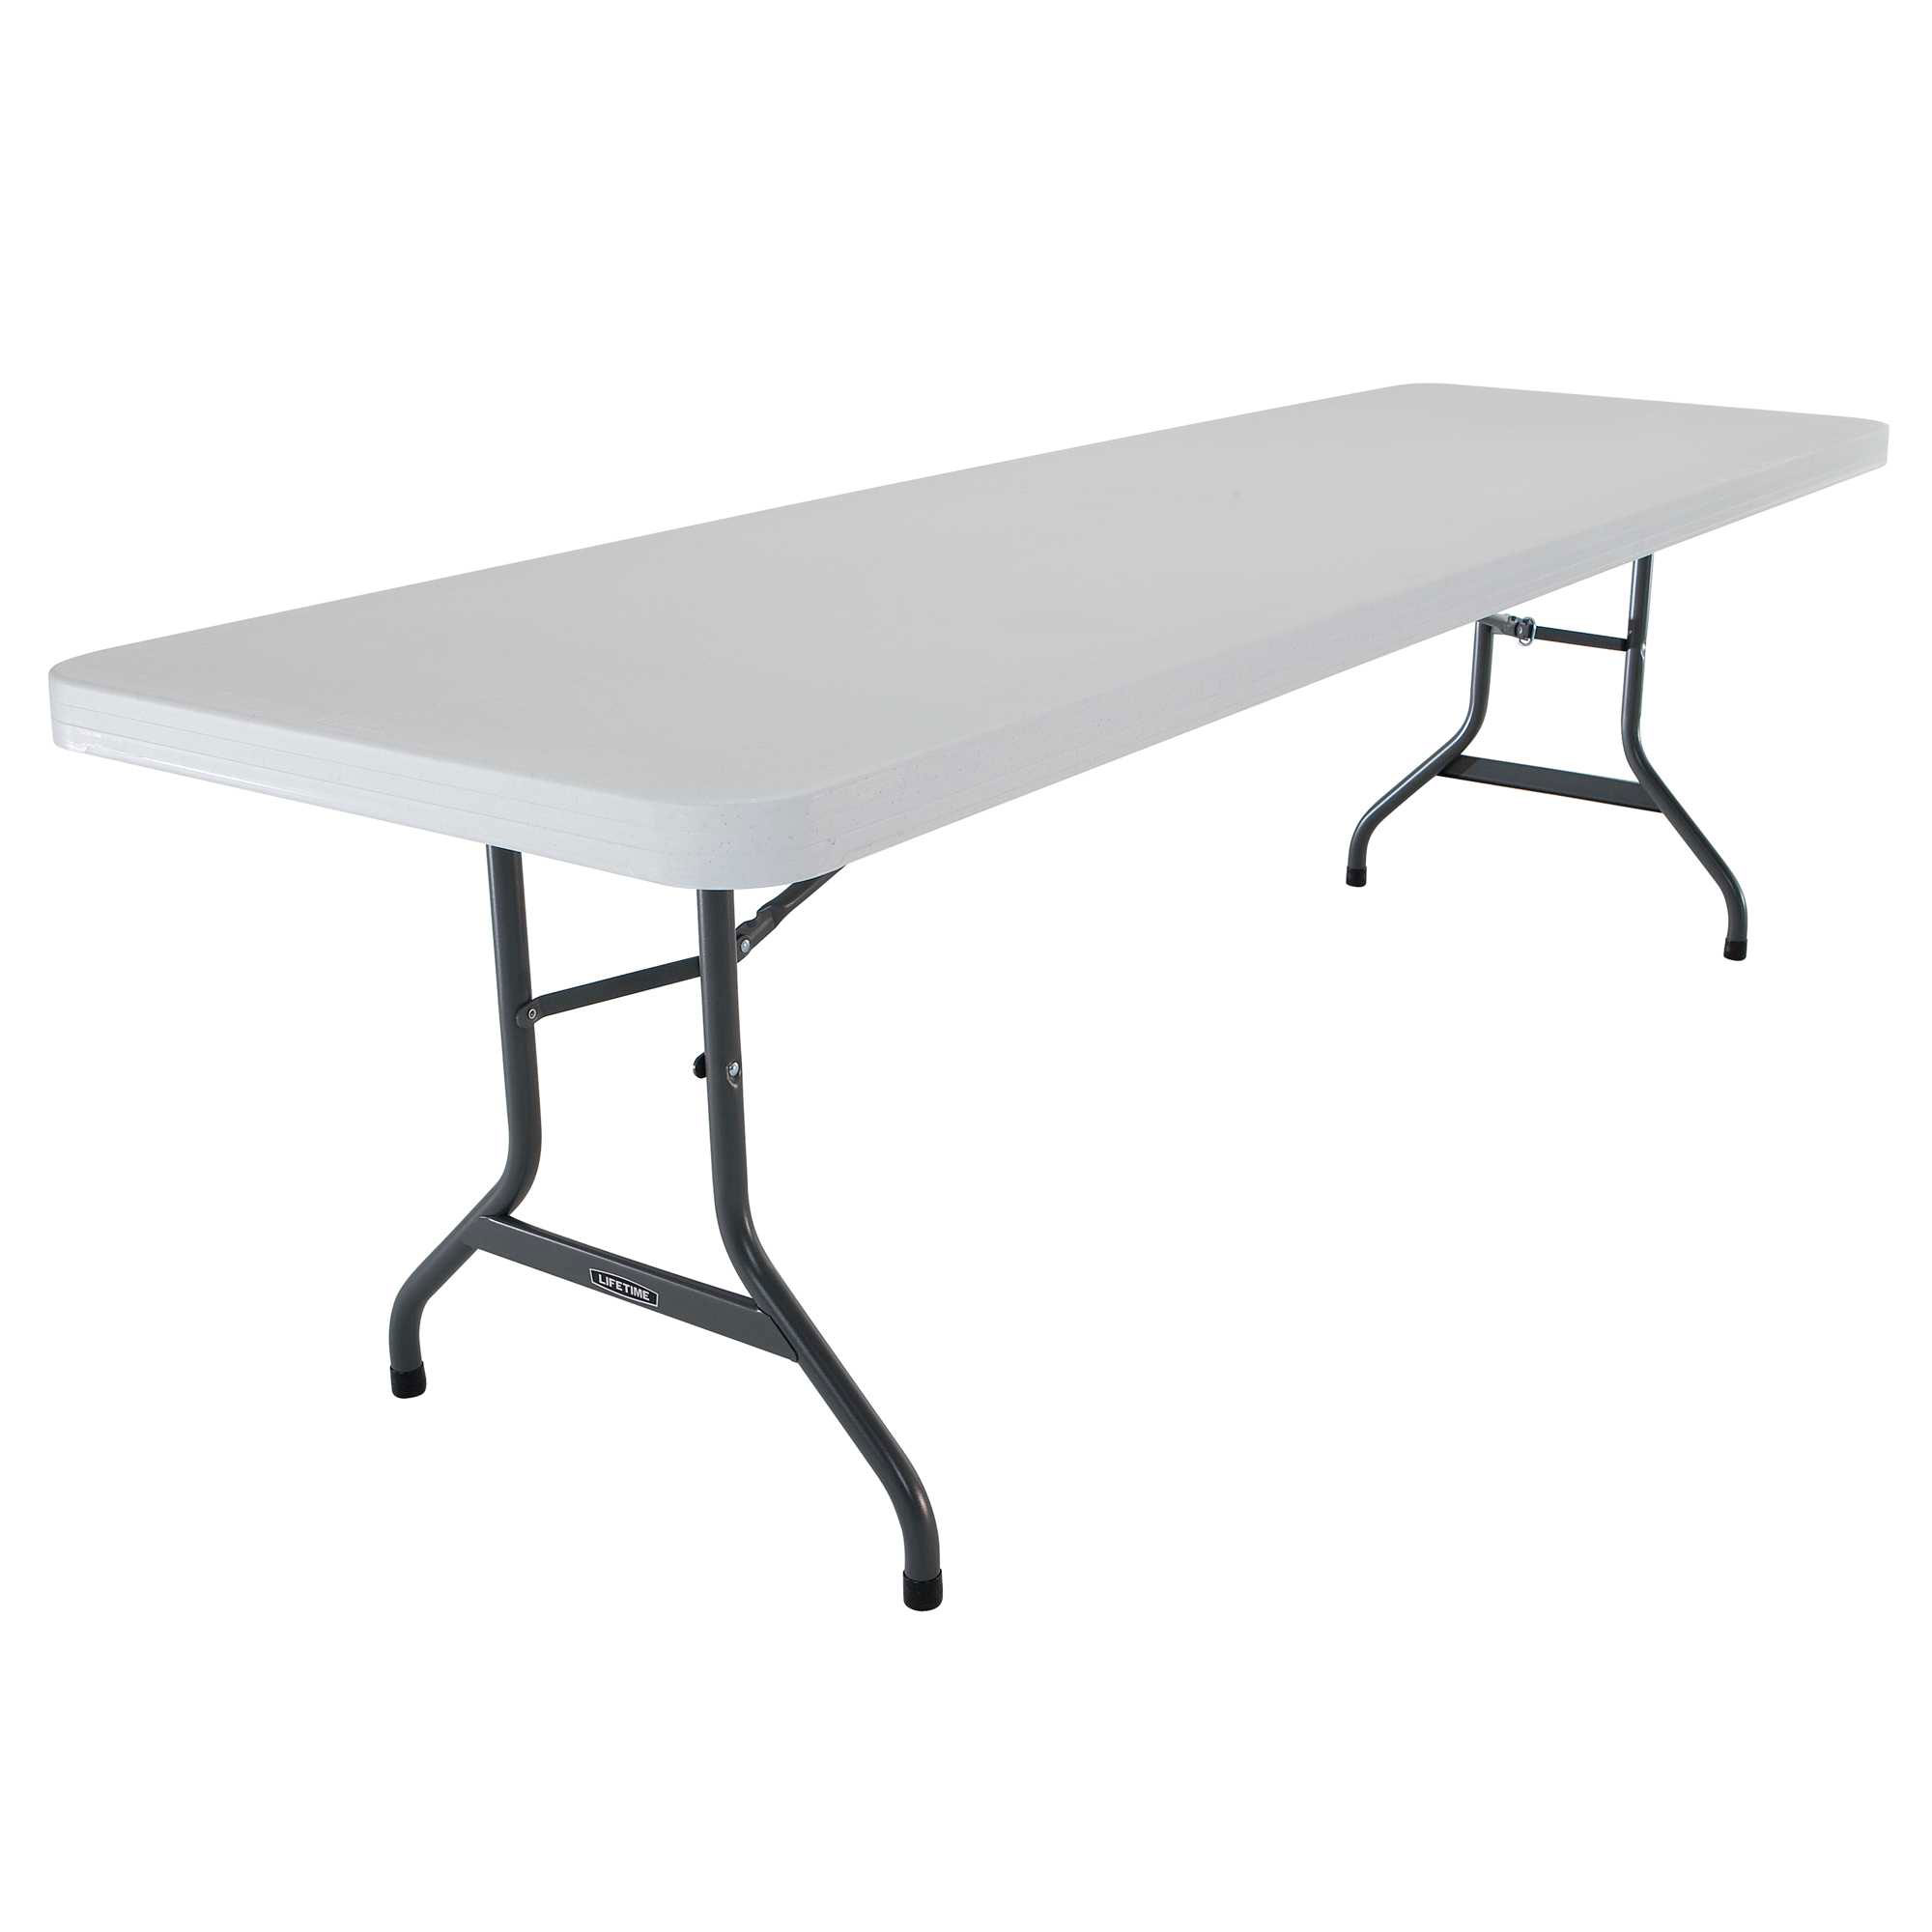 Lifetime 21 Table Bulk Pack White 8 Ft Banquet Tables Sale Today